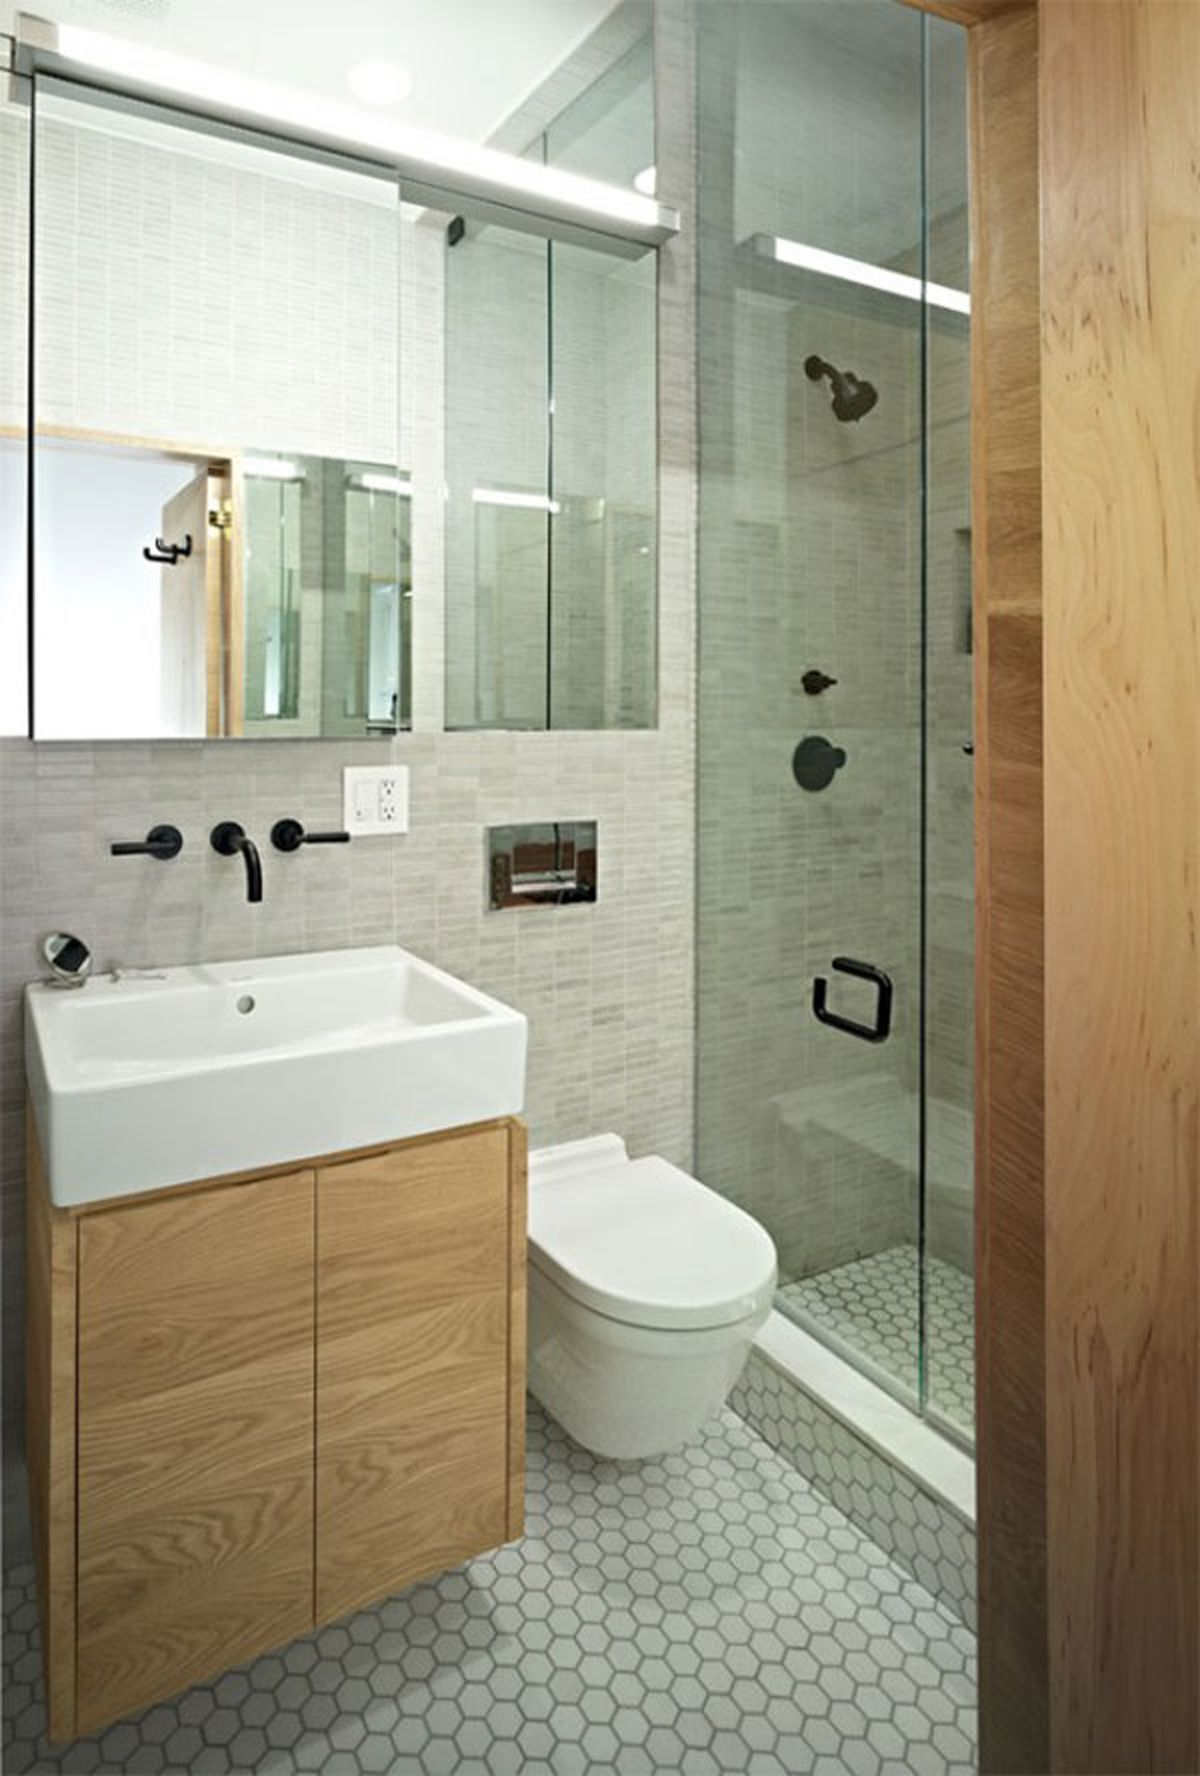 Toilet And Bathroom Designs Pictures Of Small Bathroom Remodels With Modern Compact Toilet